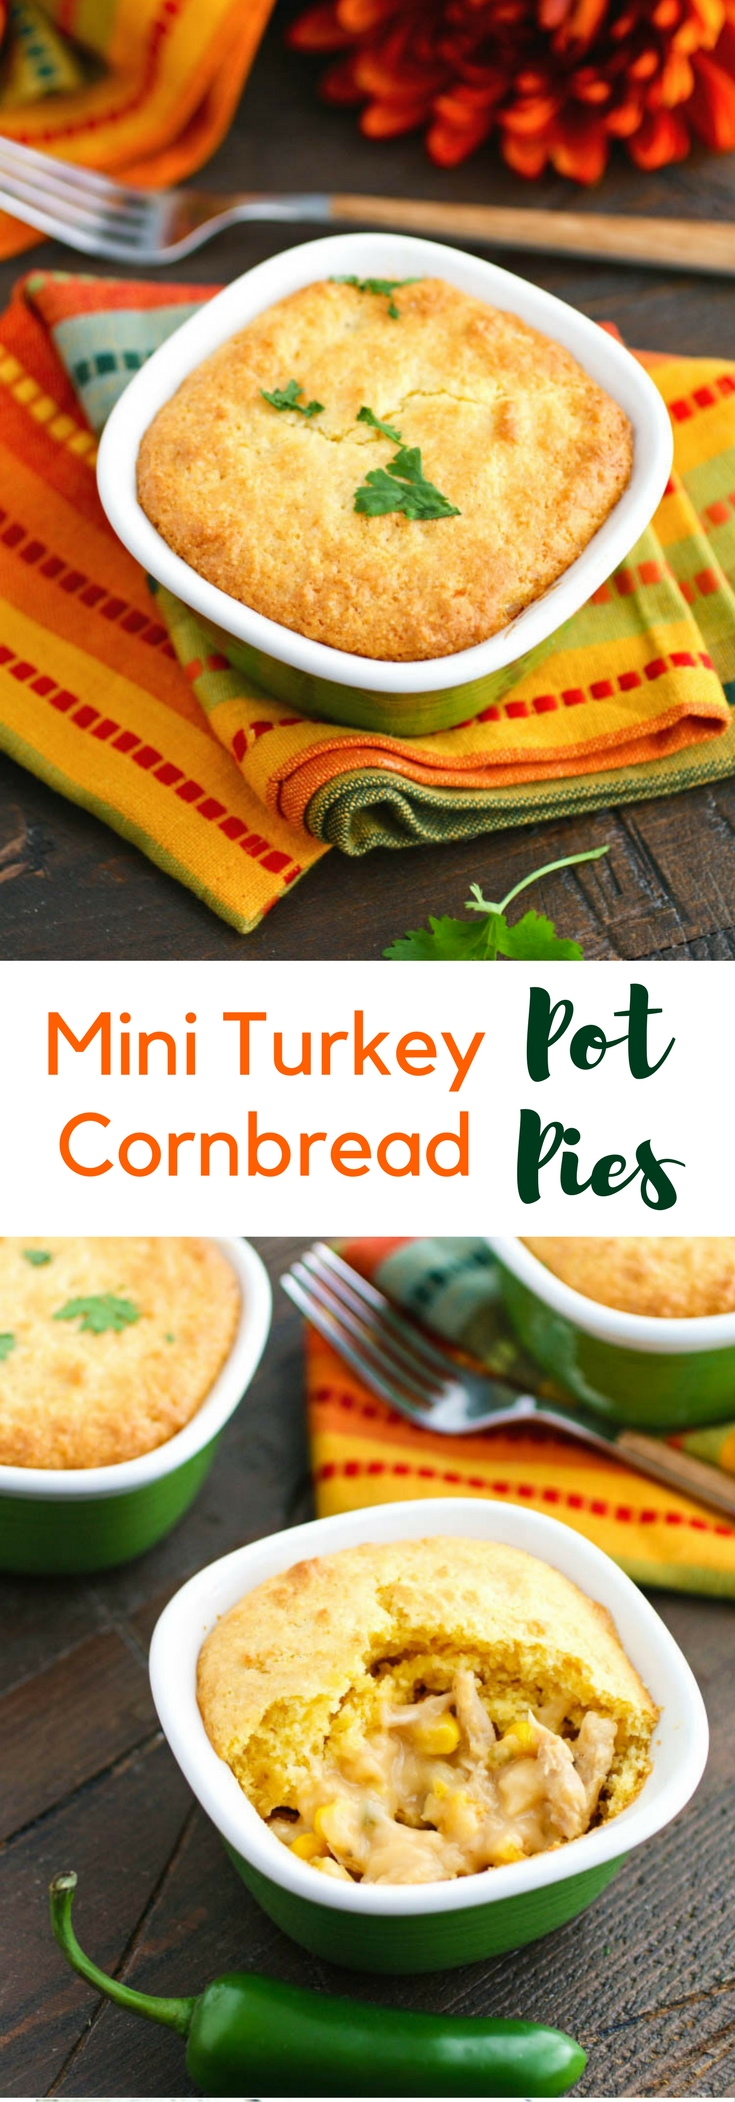 Mini Turkey Cornbread Pot Pies are a fun way to use up your leftover Thanksgiving turkey! You'll love these pot pies!